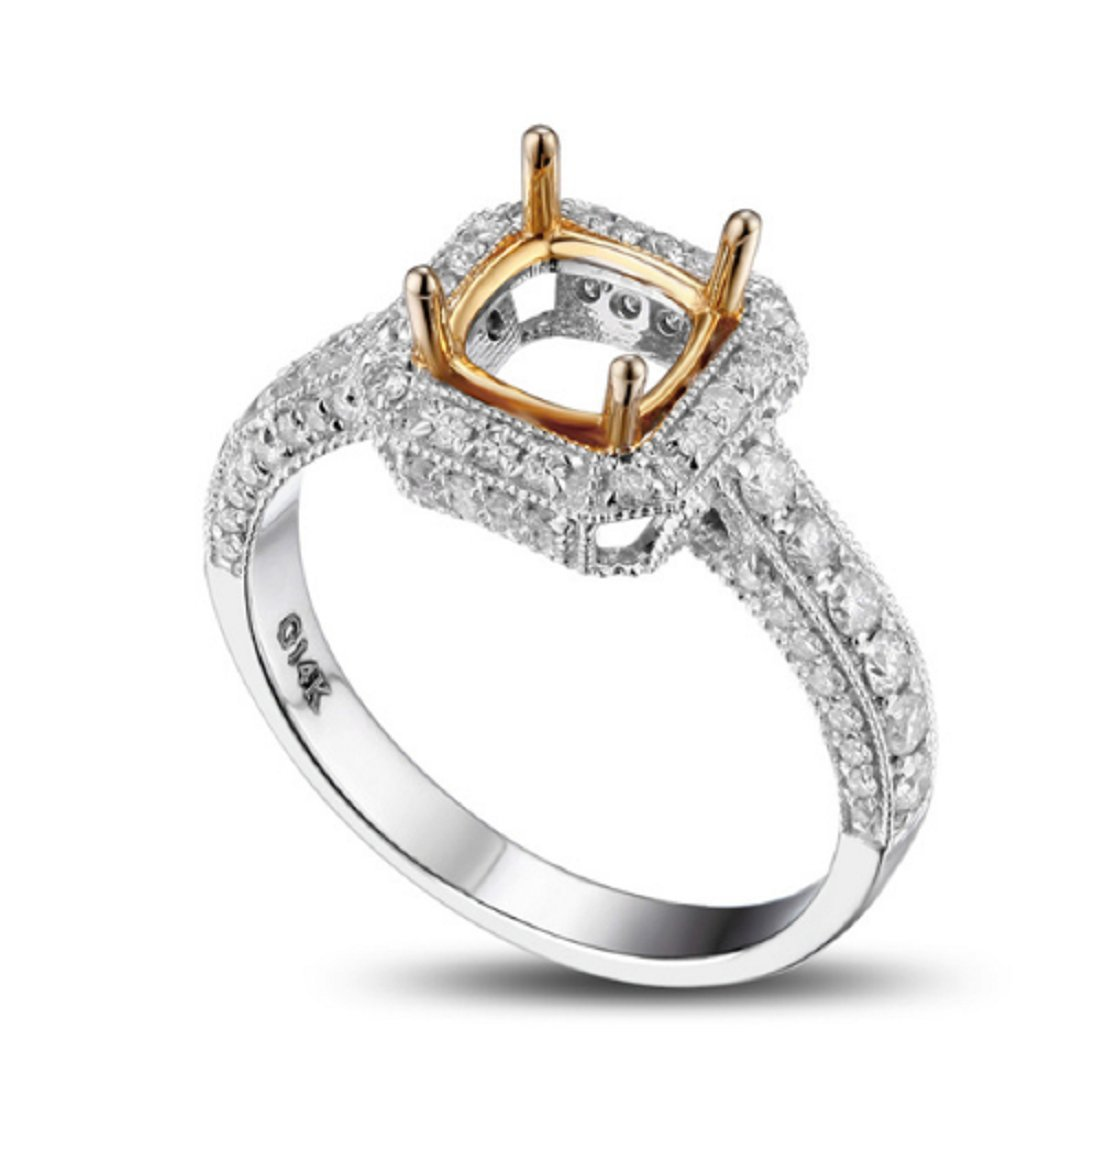 GOWE Cushion Cut 6x6mm Real 14K Multi-Tone Gold Milgrain Pave 0.78CT Diamond Semi Mount Ring